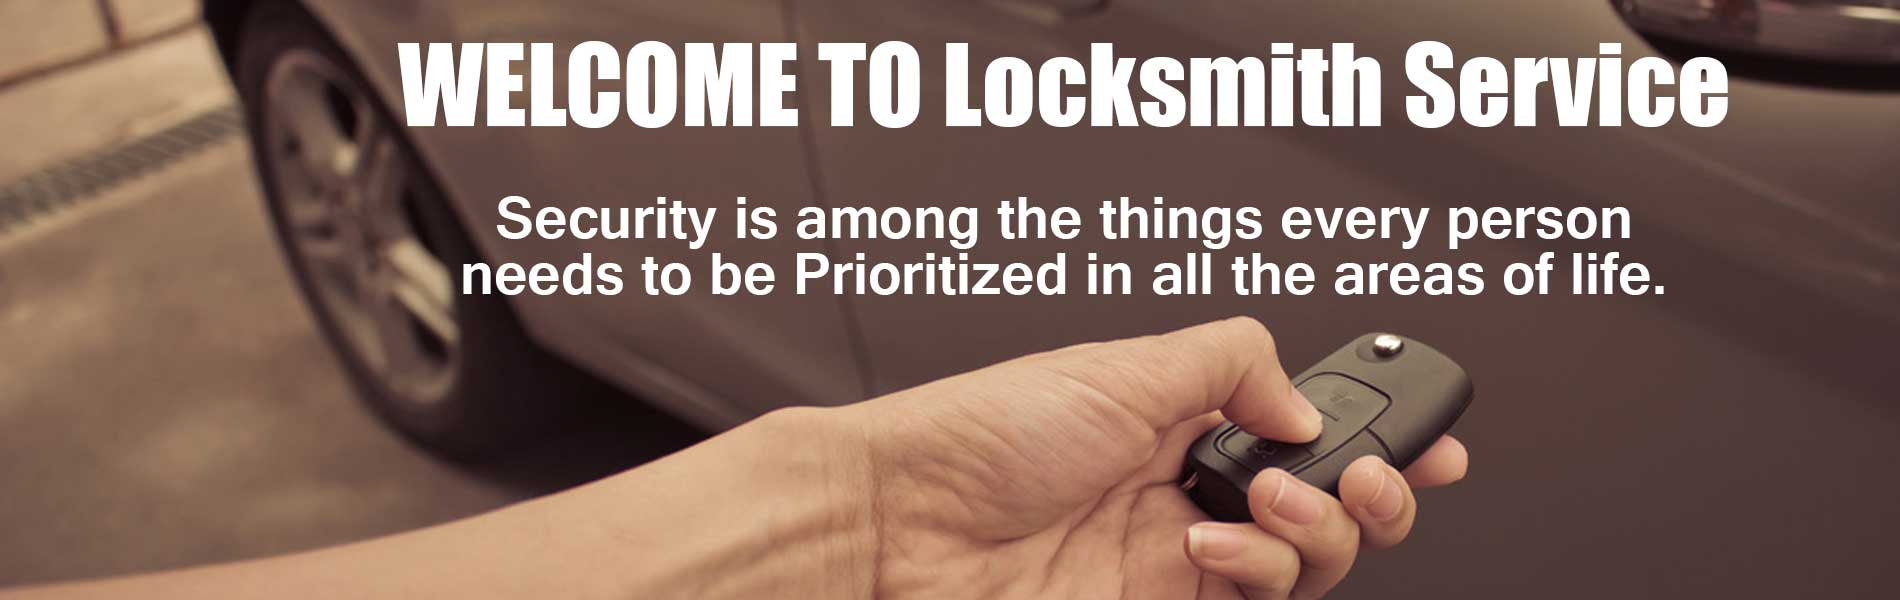 San Bruno Locksmith Store San Bruno, CA 650-480-6016